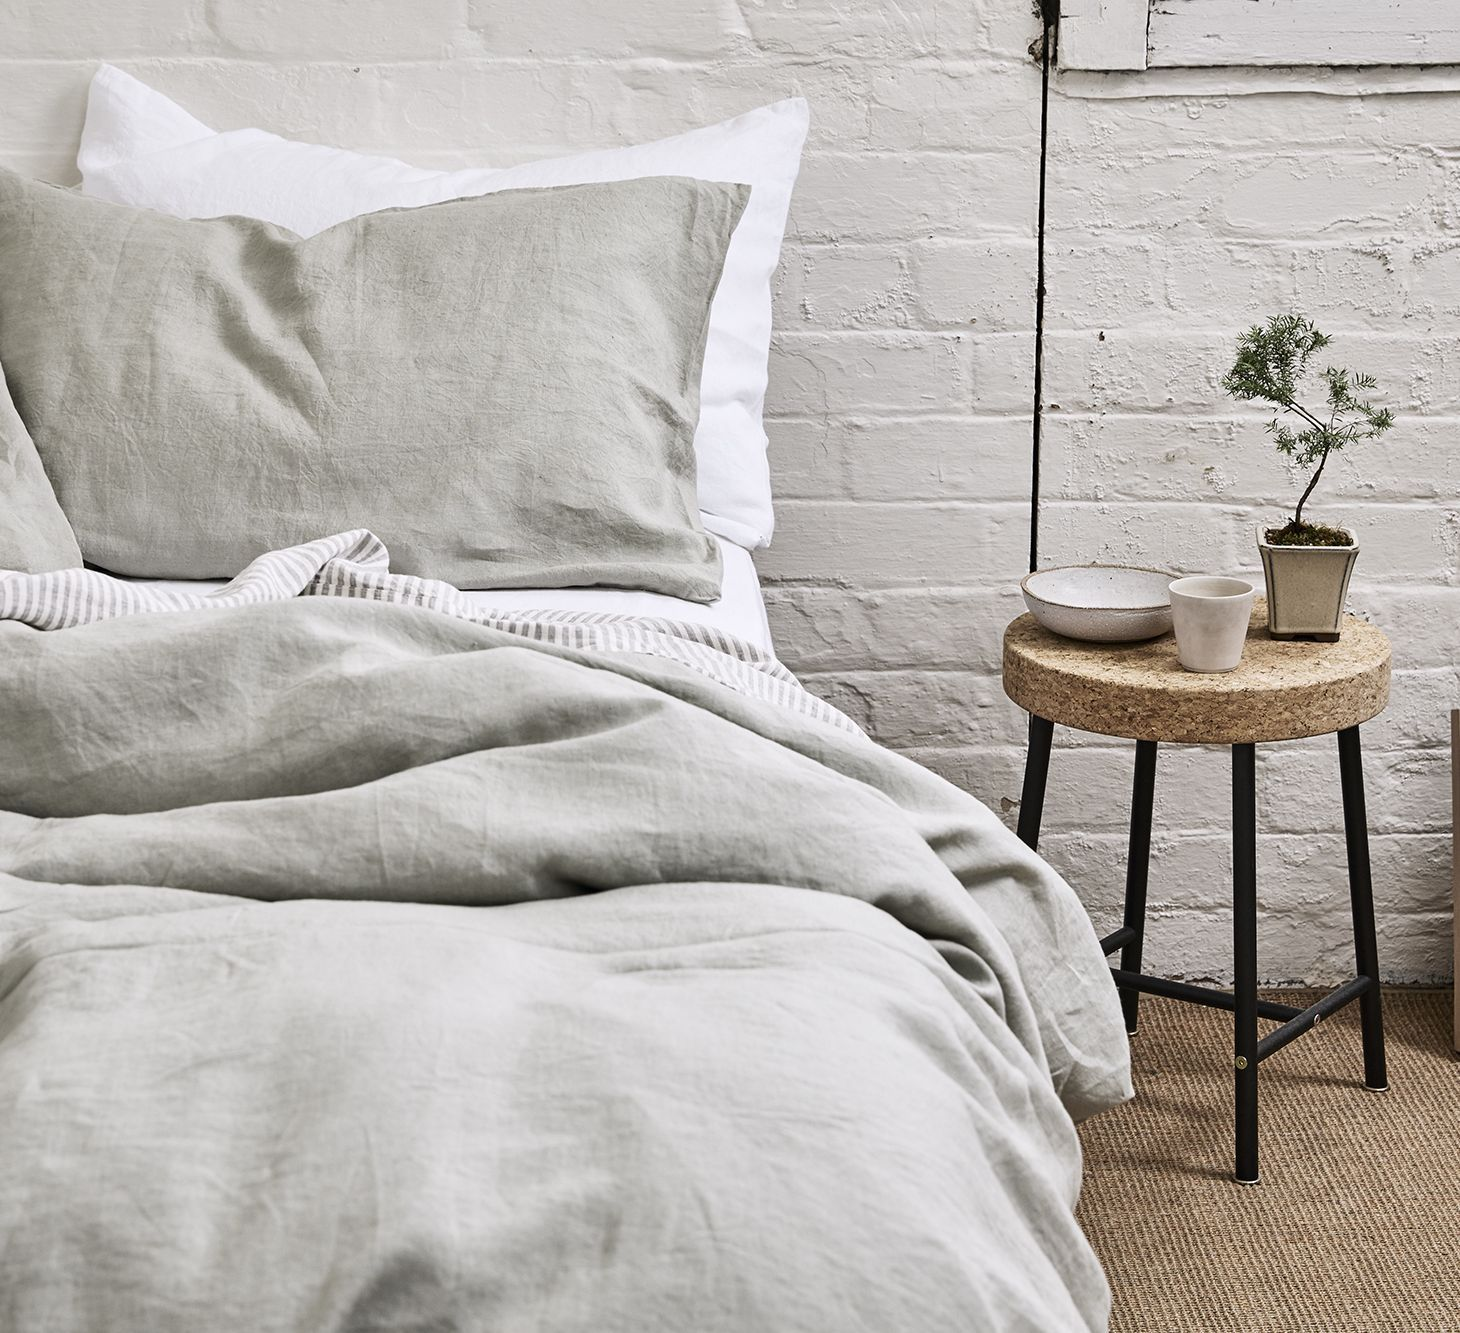 Thoughtful essentials for everyday life. IN BED focuses on